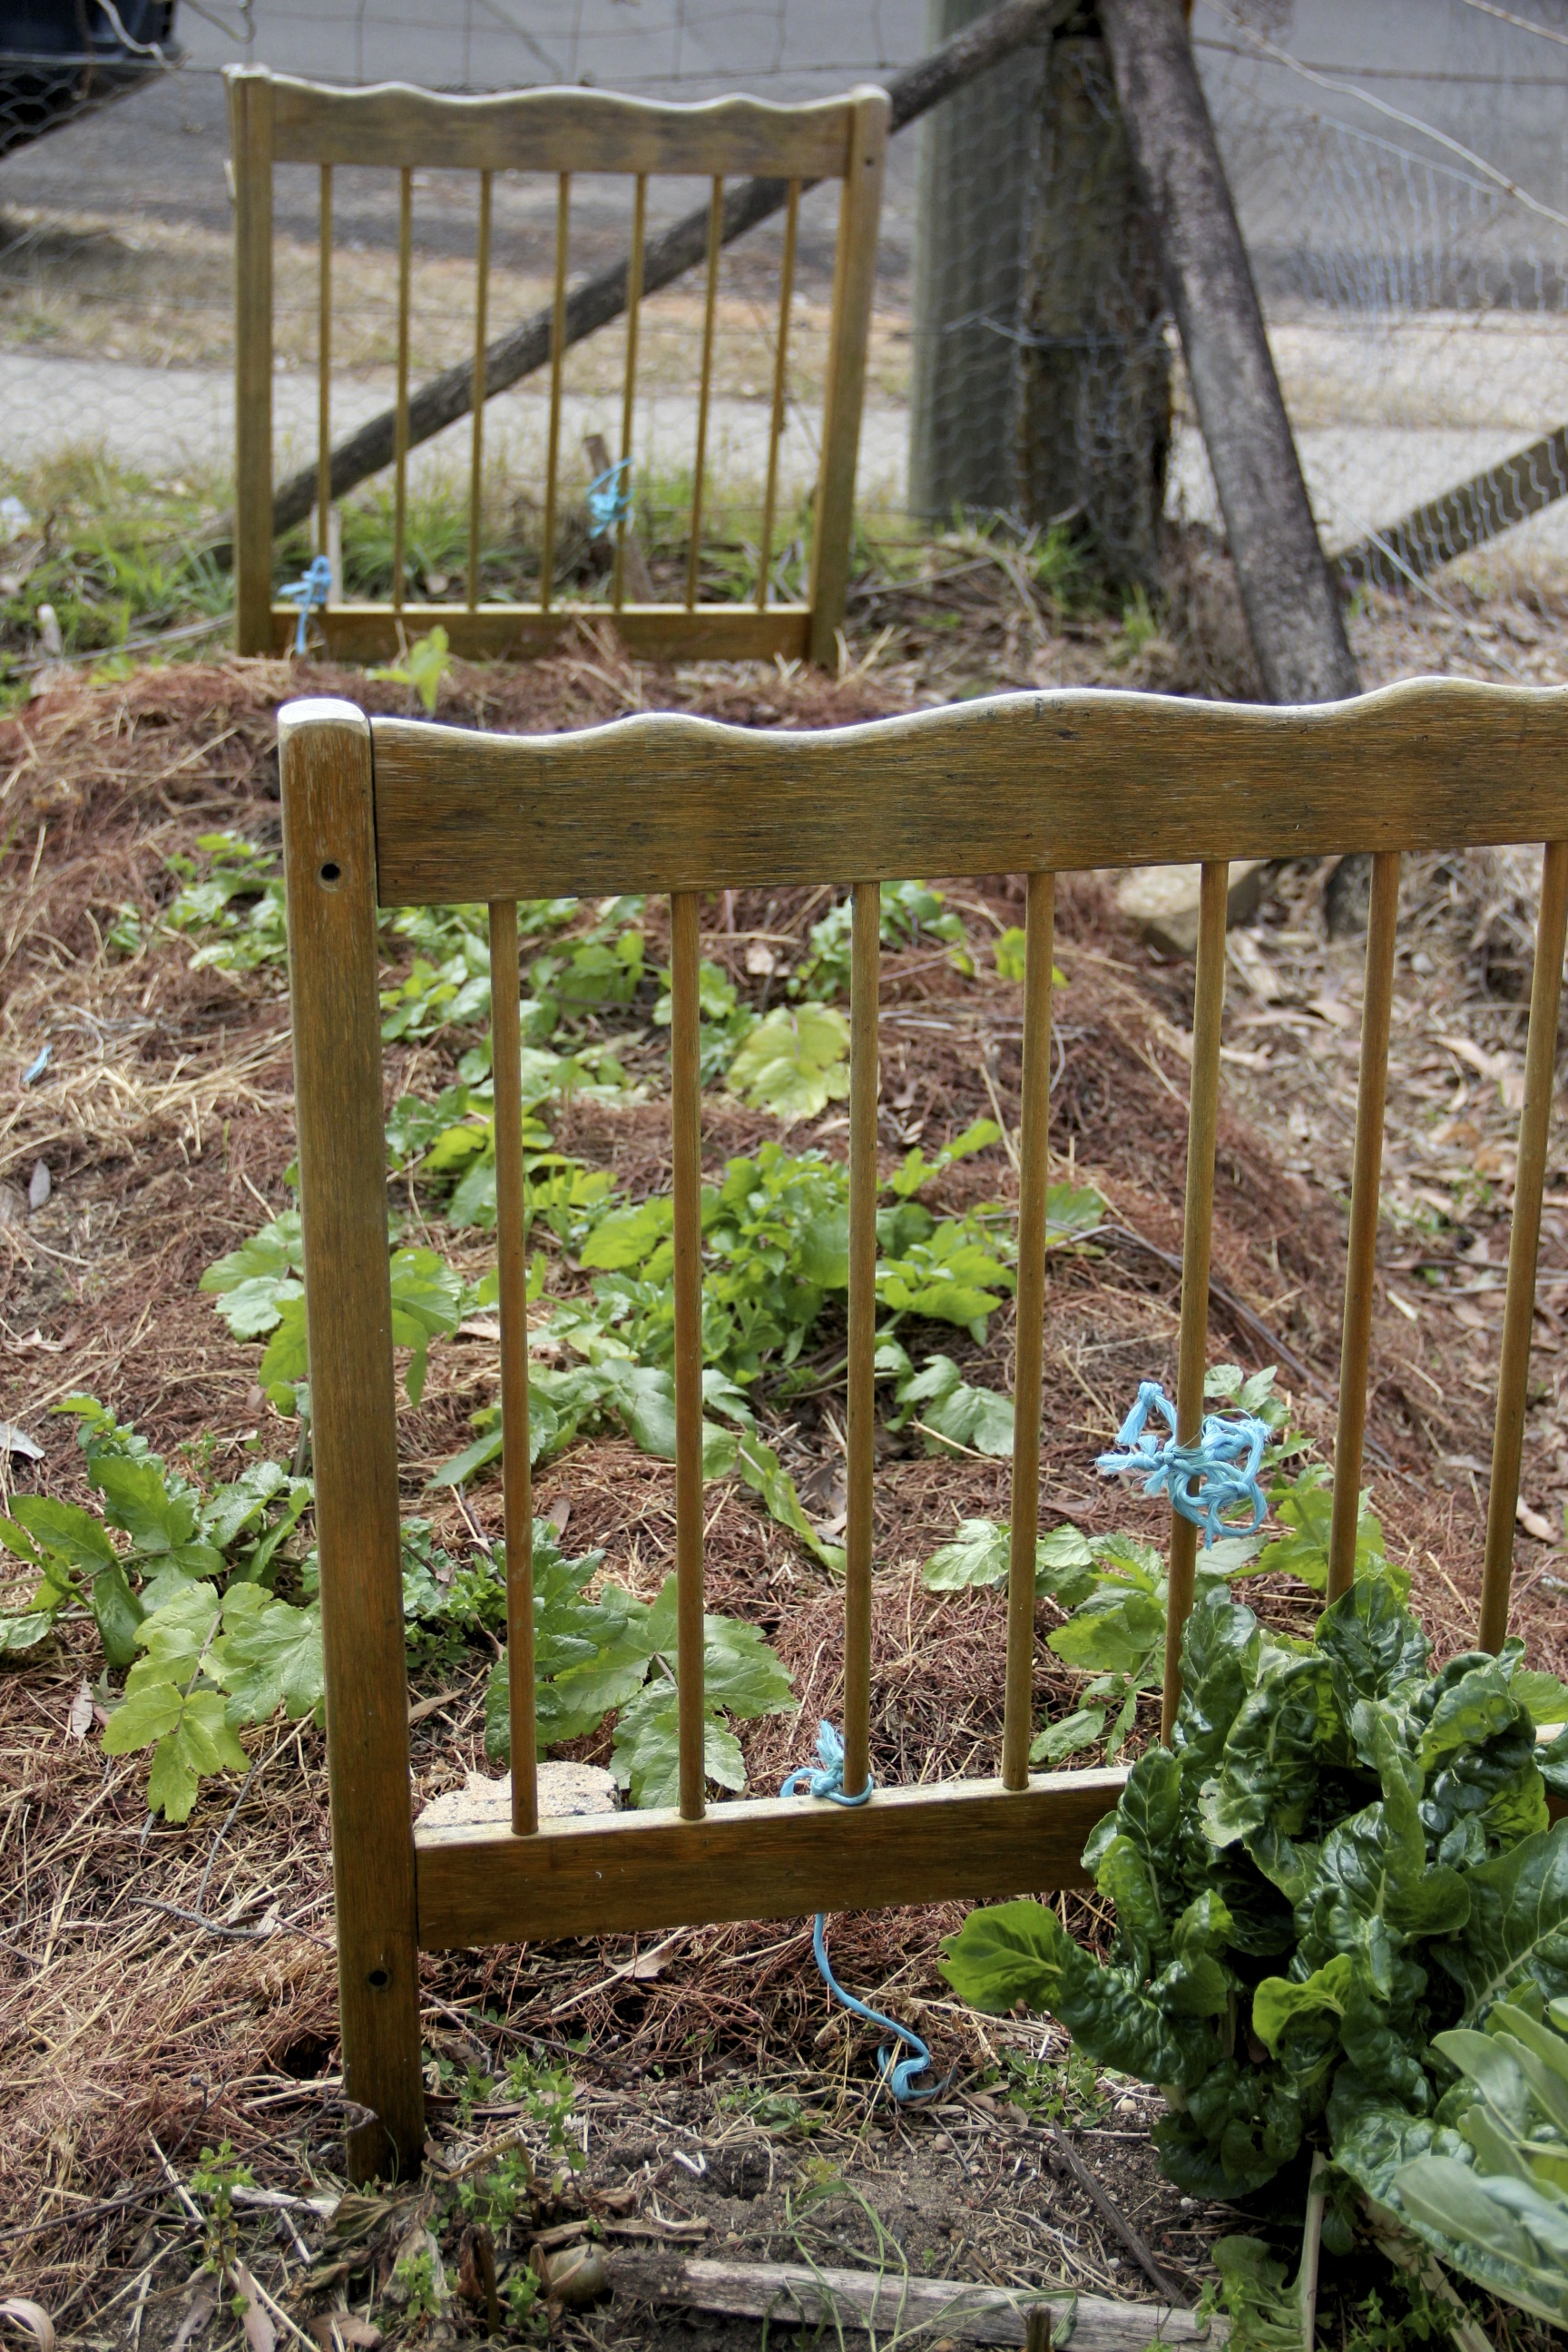 GARDEN TIPS FROM LOCAL GROWERS | The Blue Mountains Food Co-op